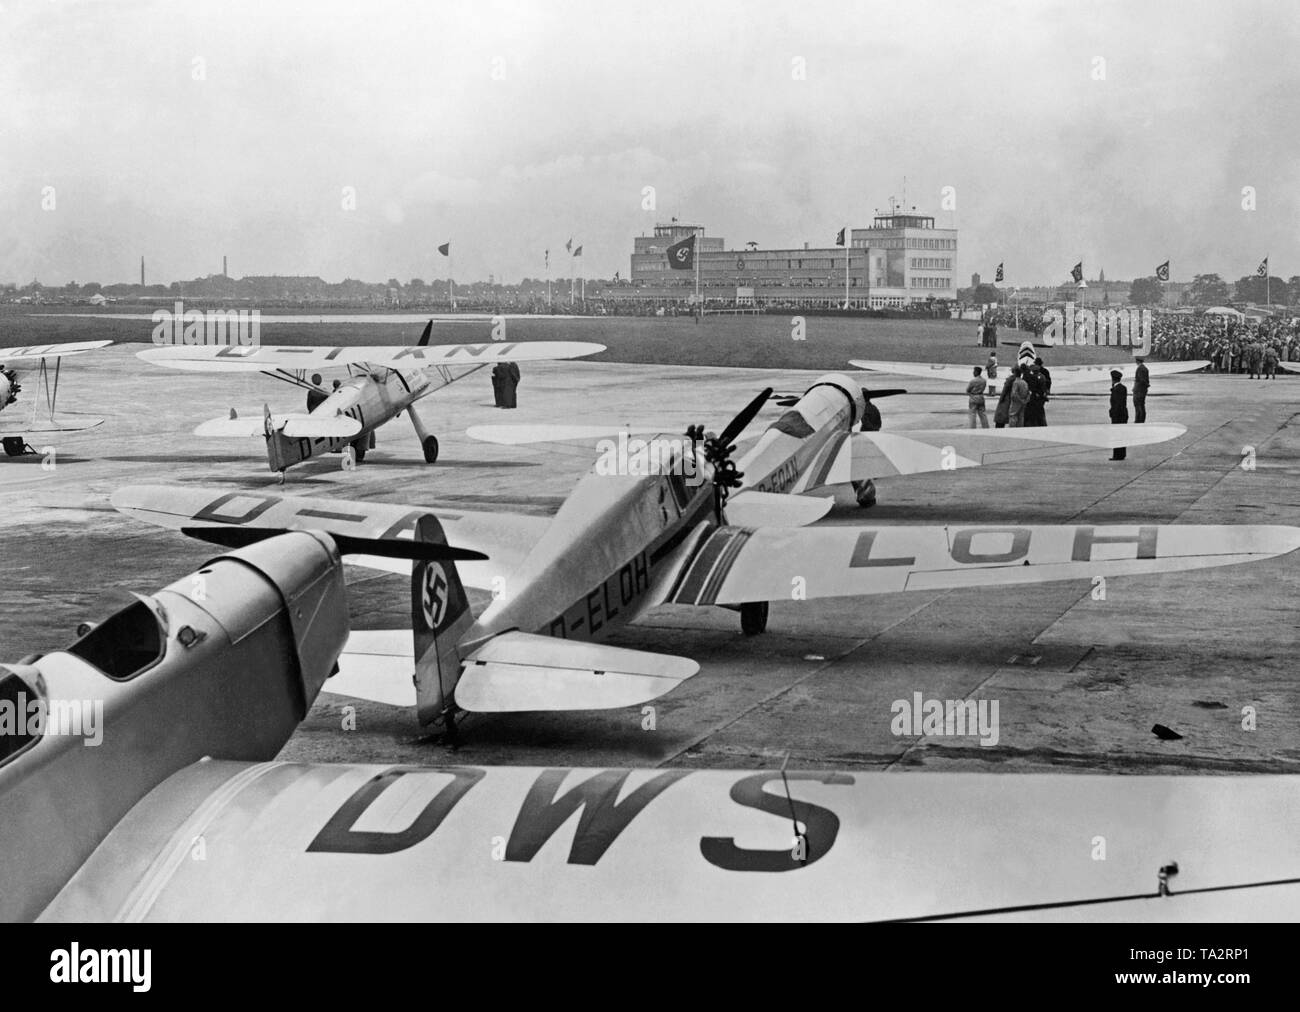 The German Aerobatic Championships, which were won by Wilhelm Stoer, takes place at the airport Oberwiesenfeld in Munich. Numerous spectators attend the event. - Stock Image